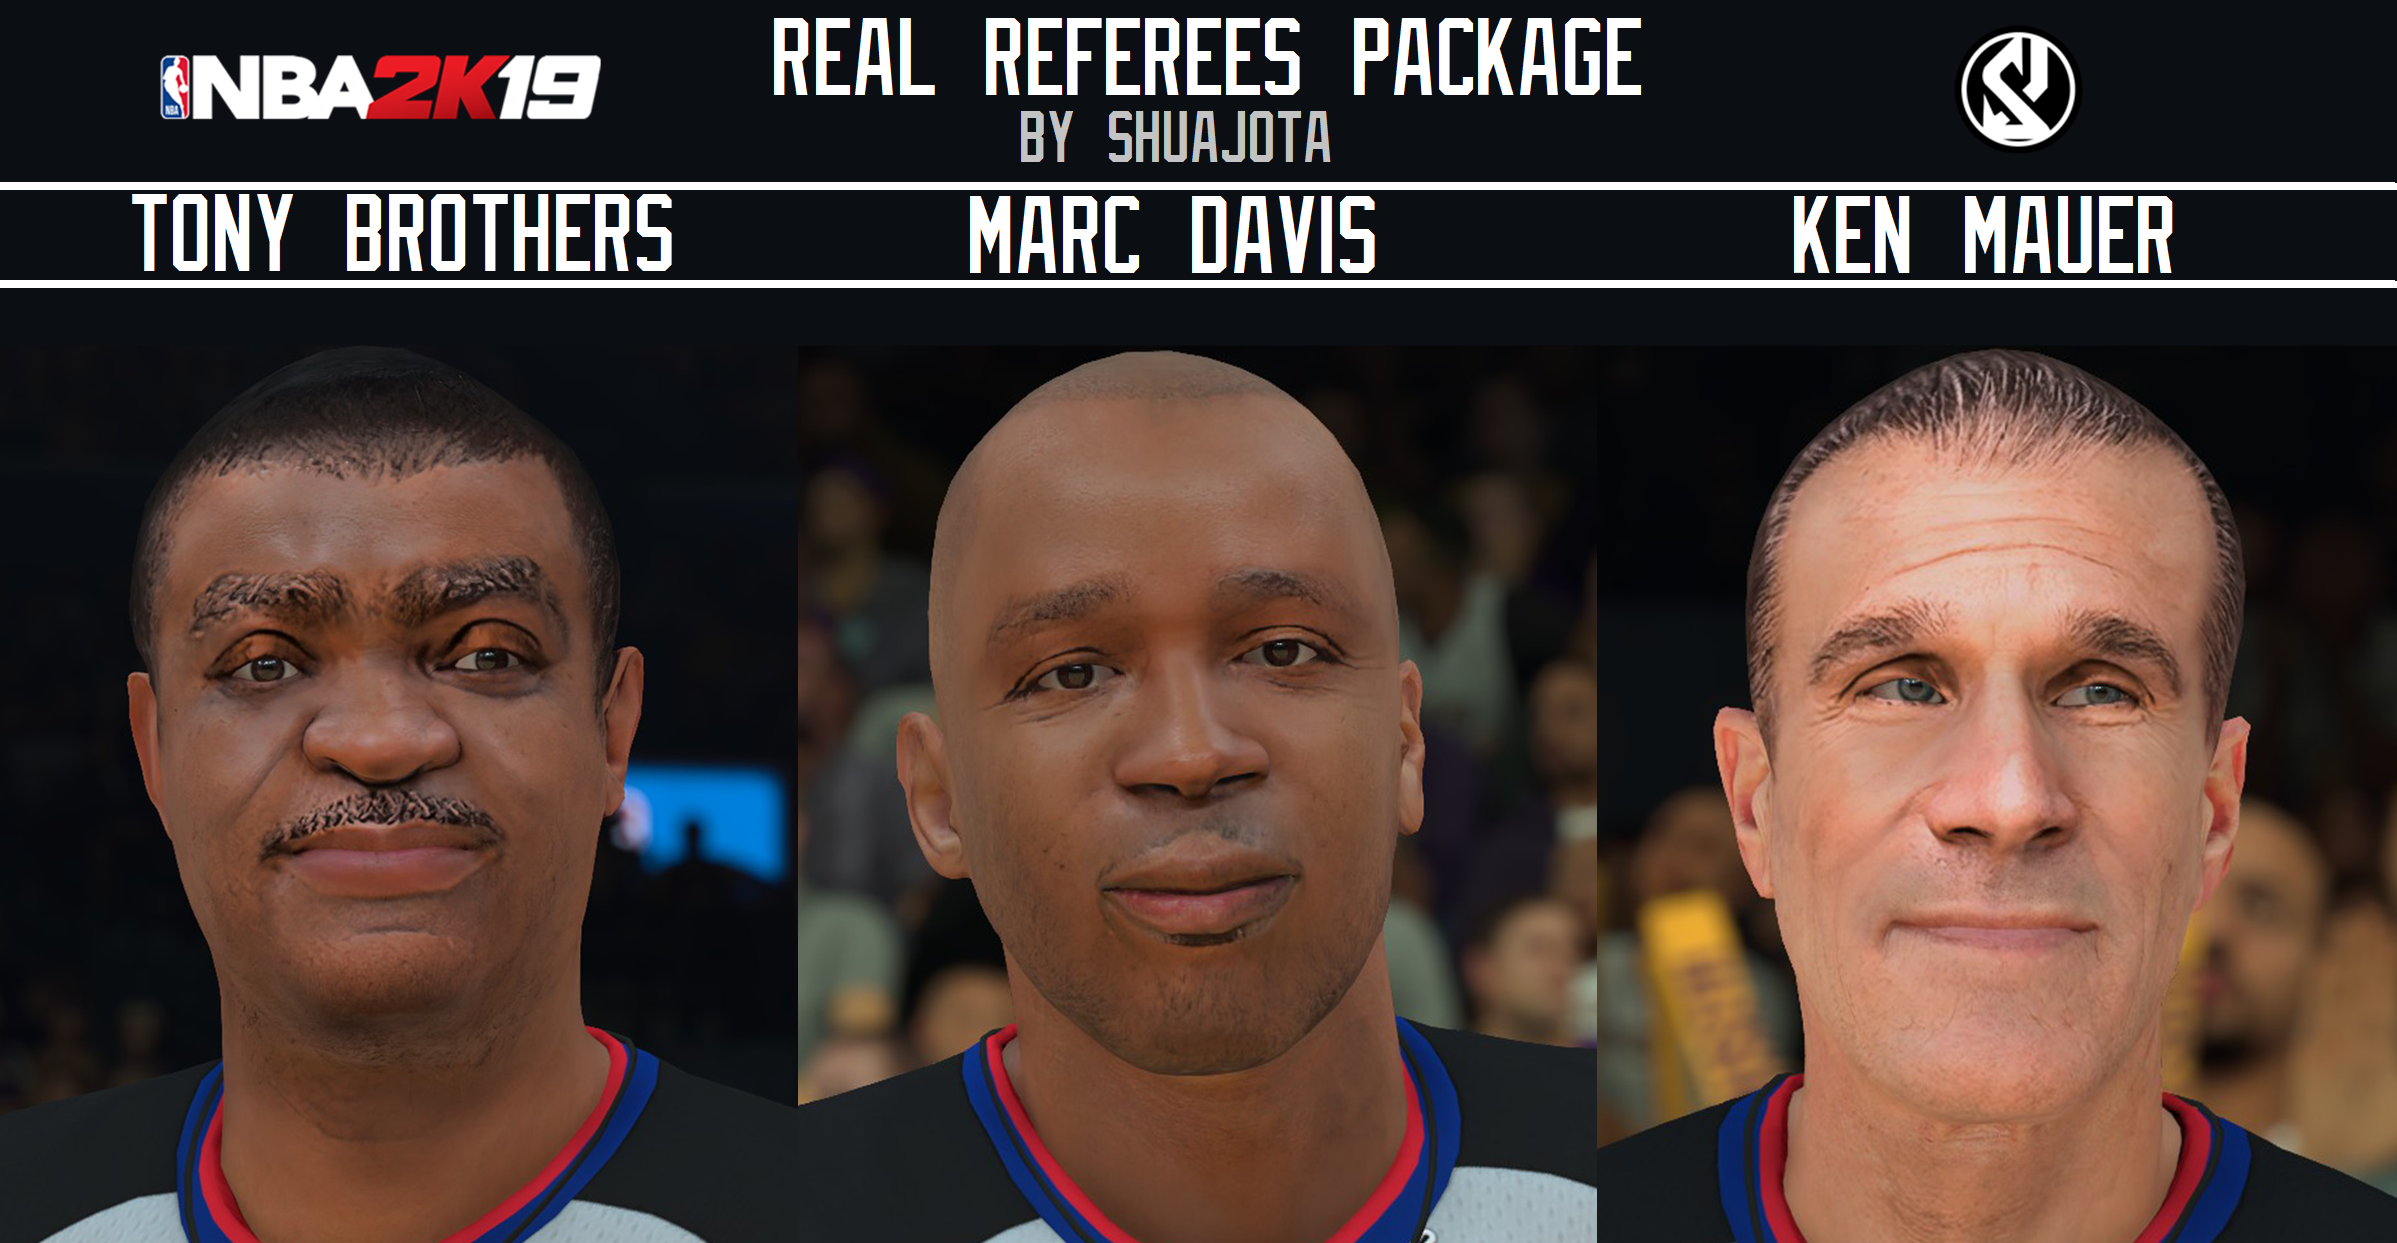 Real Referees Package